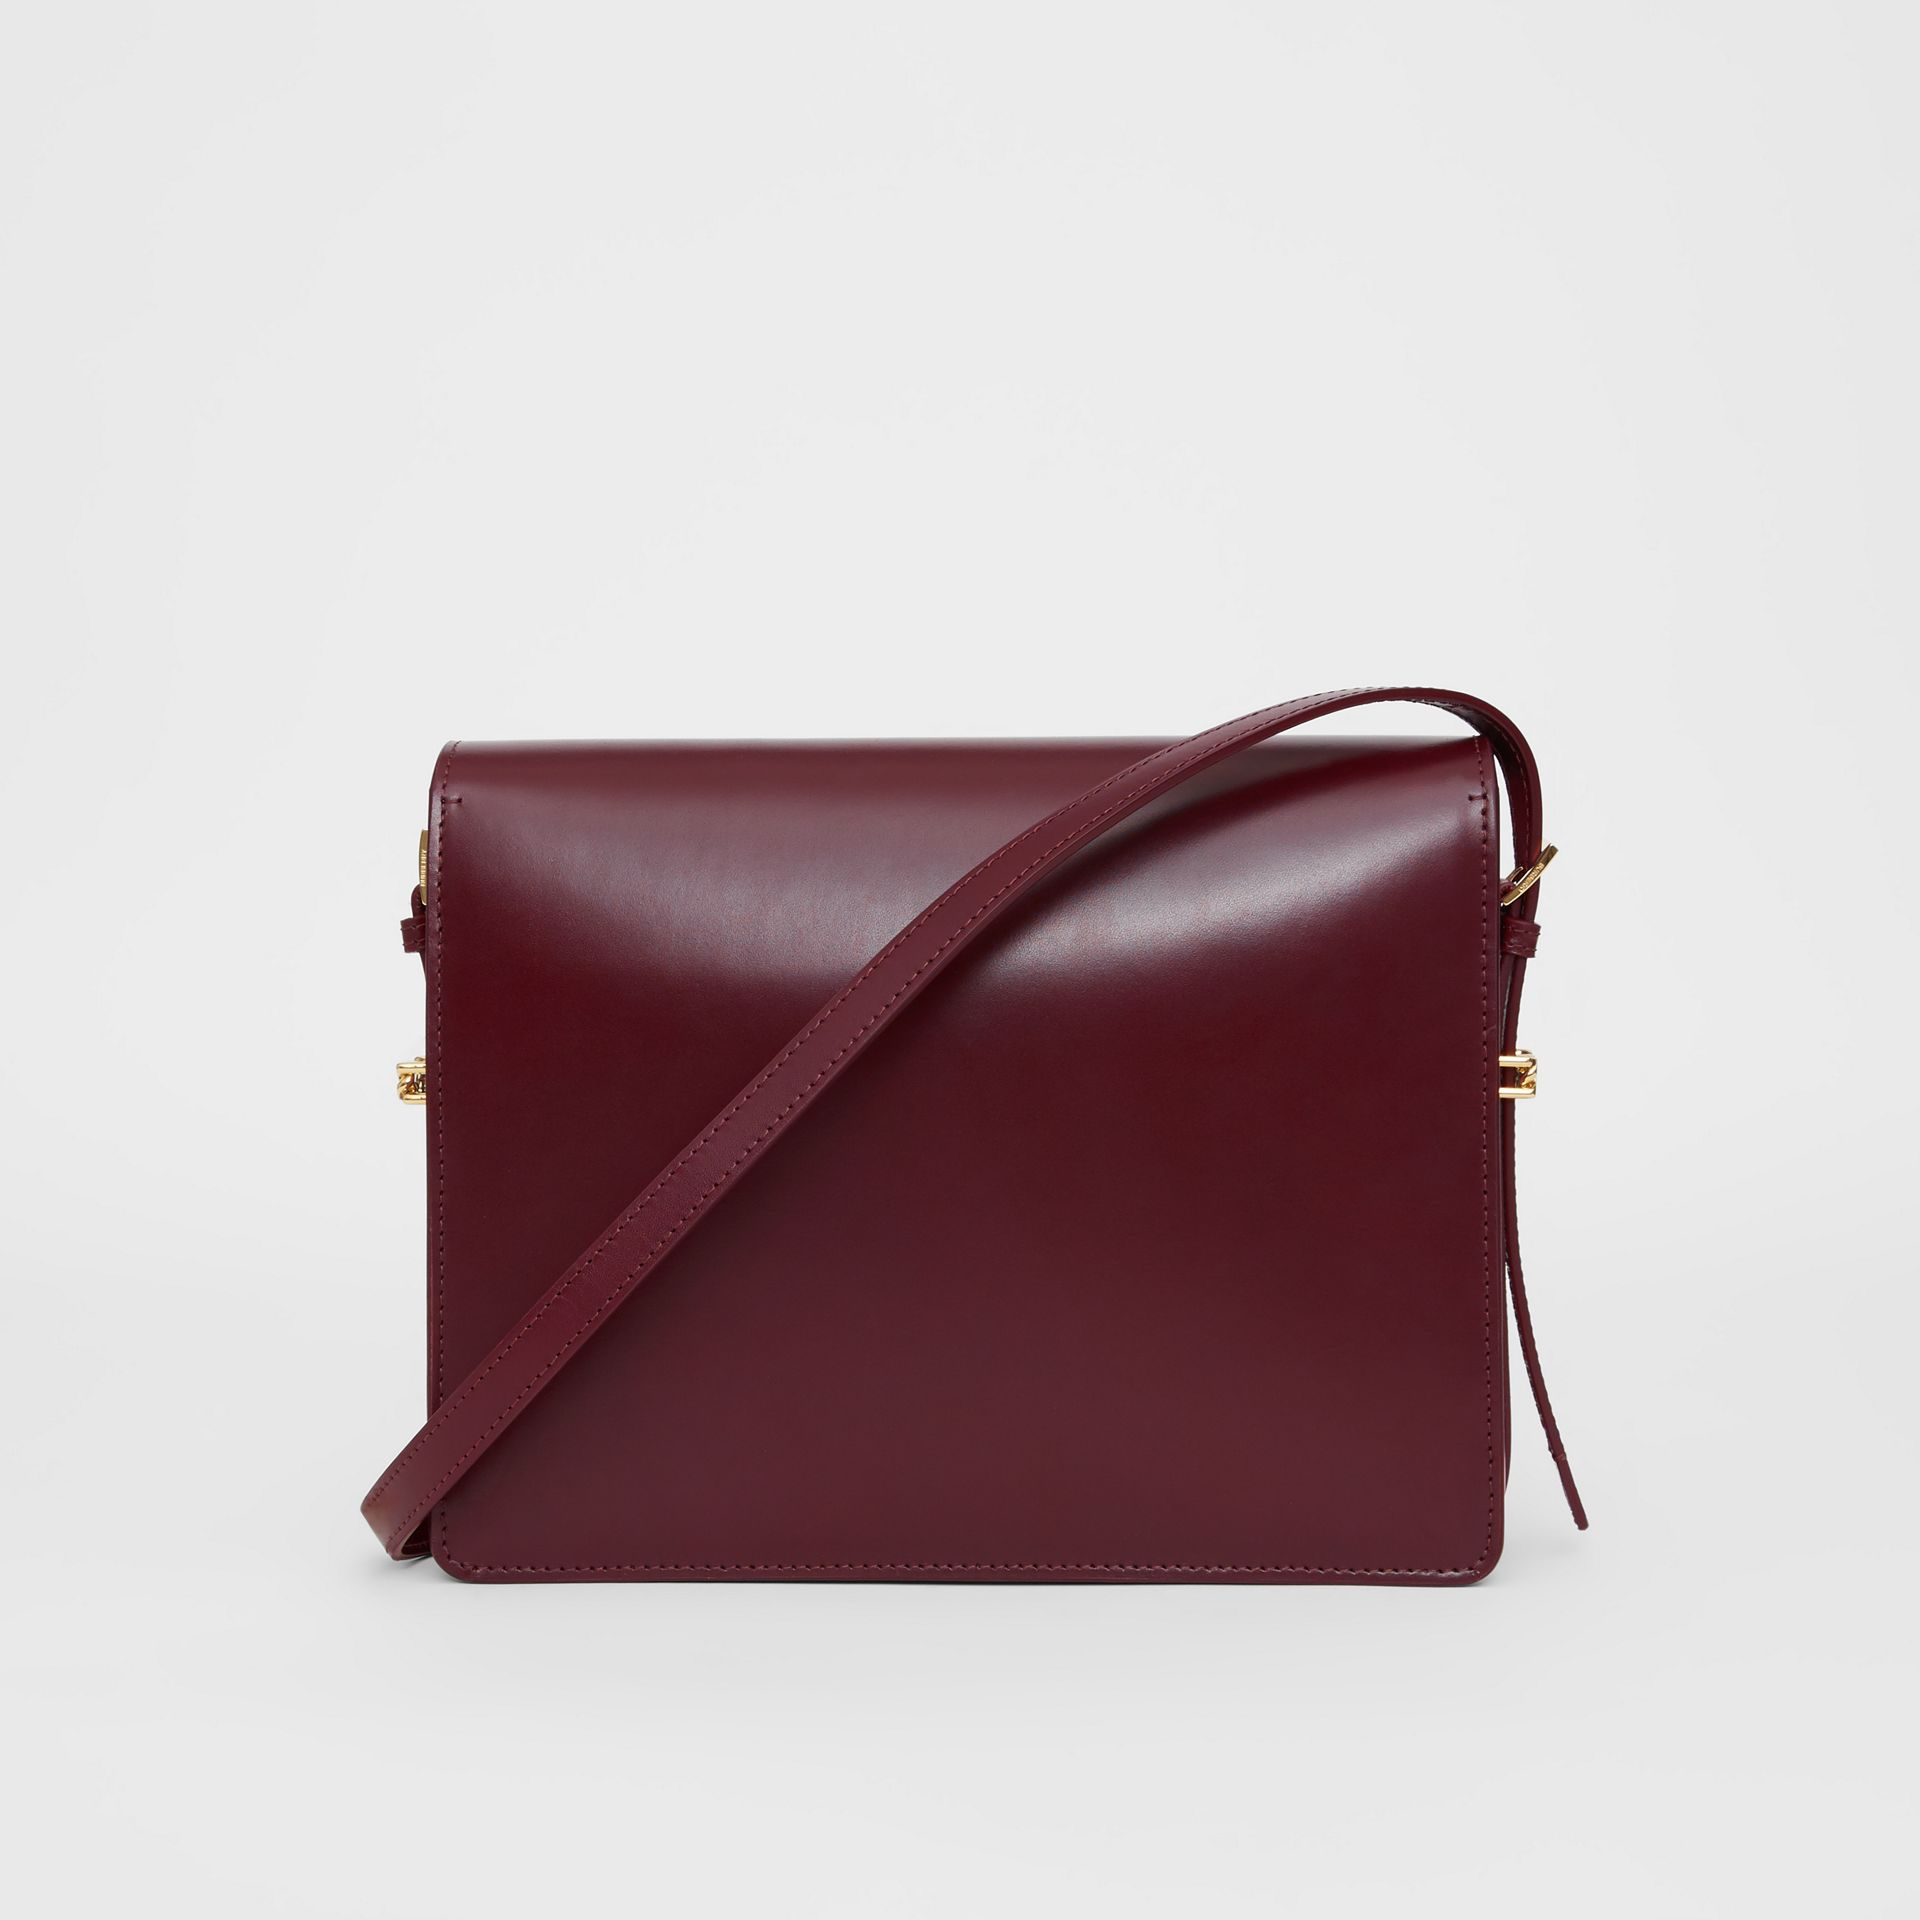 Grand sac Grace en cuir bicolore (Oxblood/rouge Militaire Vif) - Femme | Burberry - photo de la galerie 7